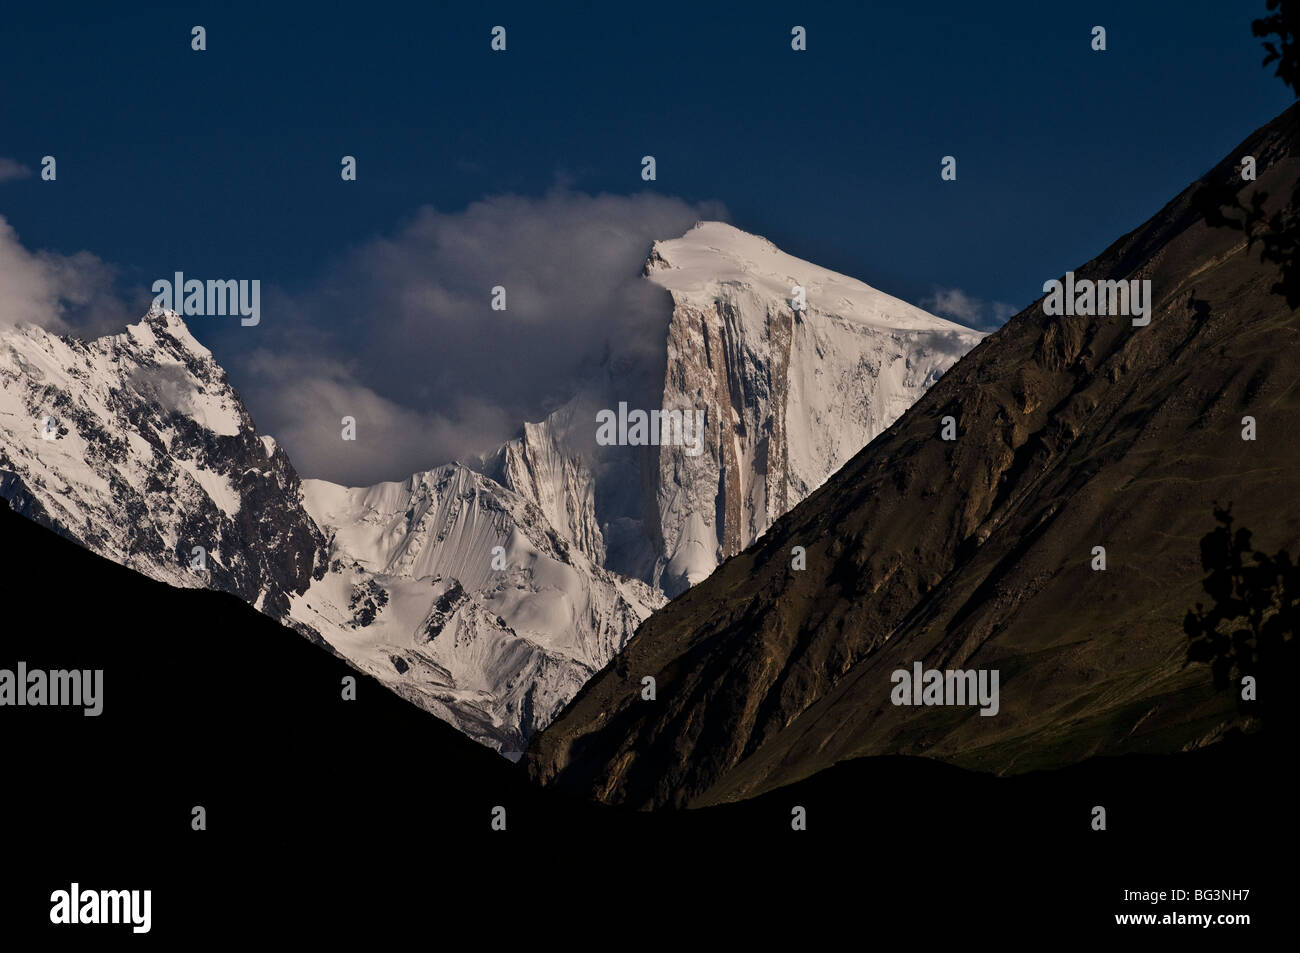 Dramatic mountain scenery as seen in North Pakistan. - Stock Image